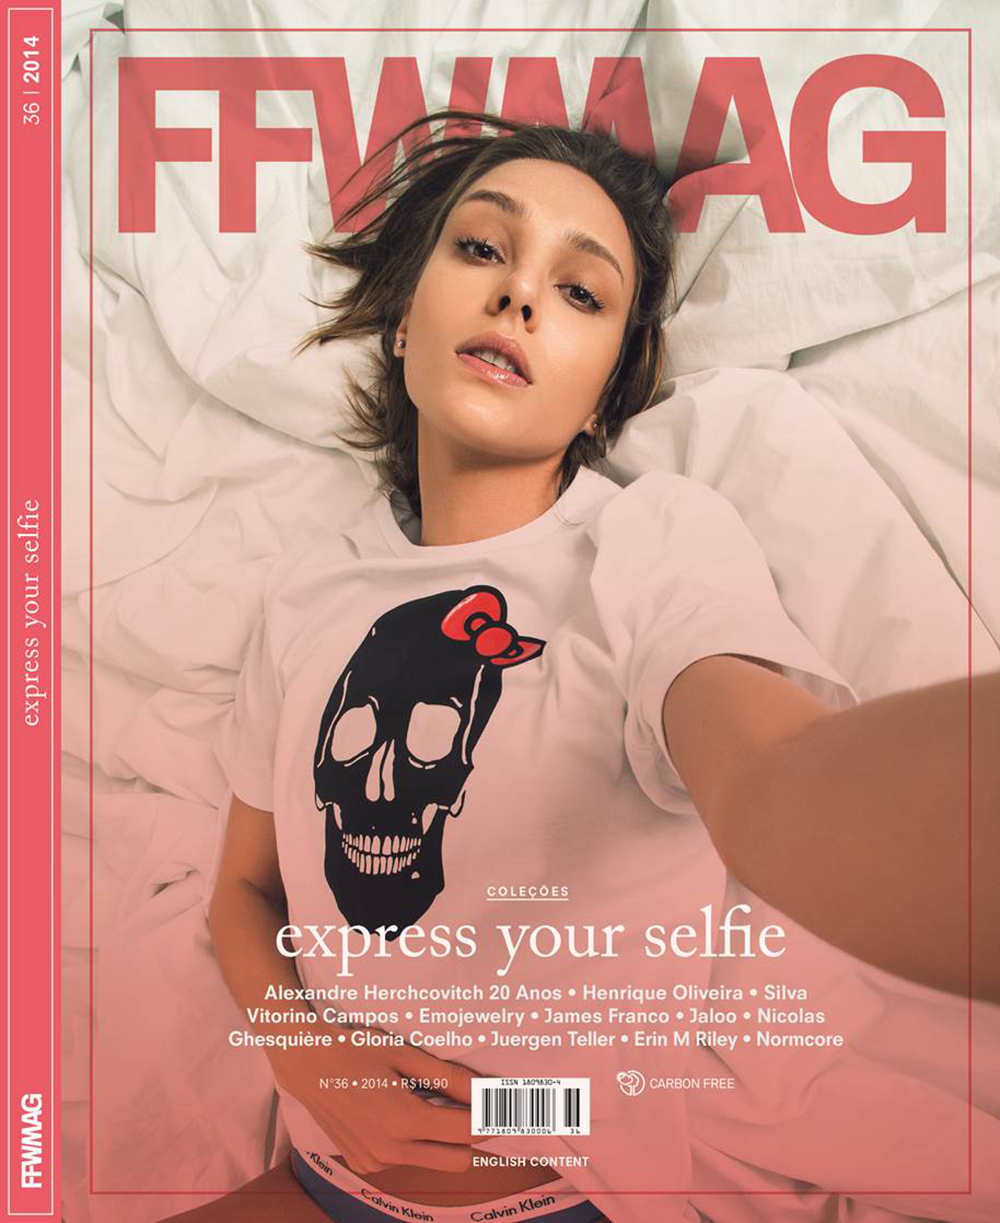 5 FFWMAG 36 cover